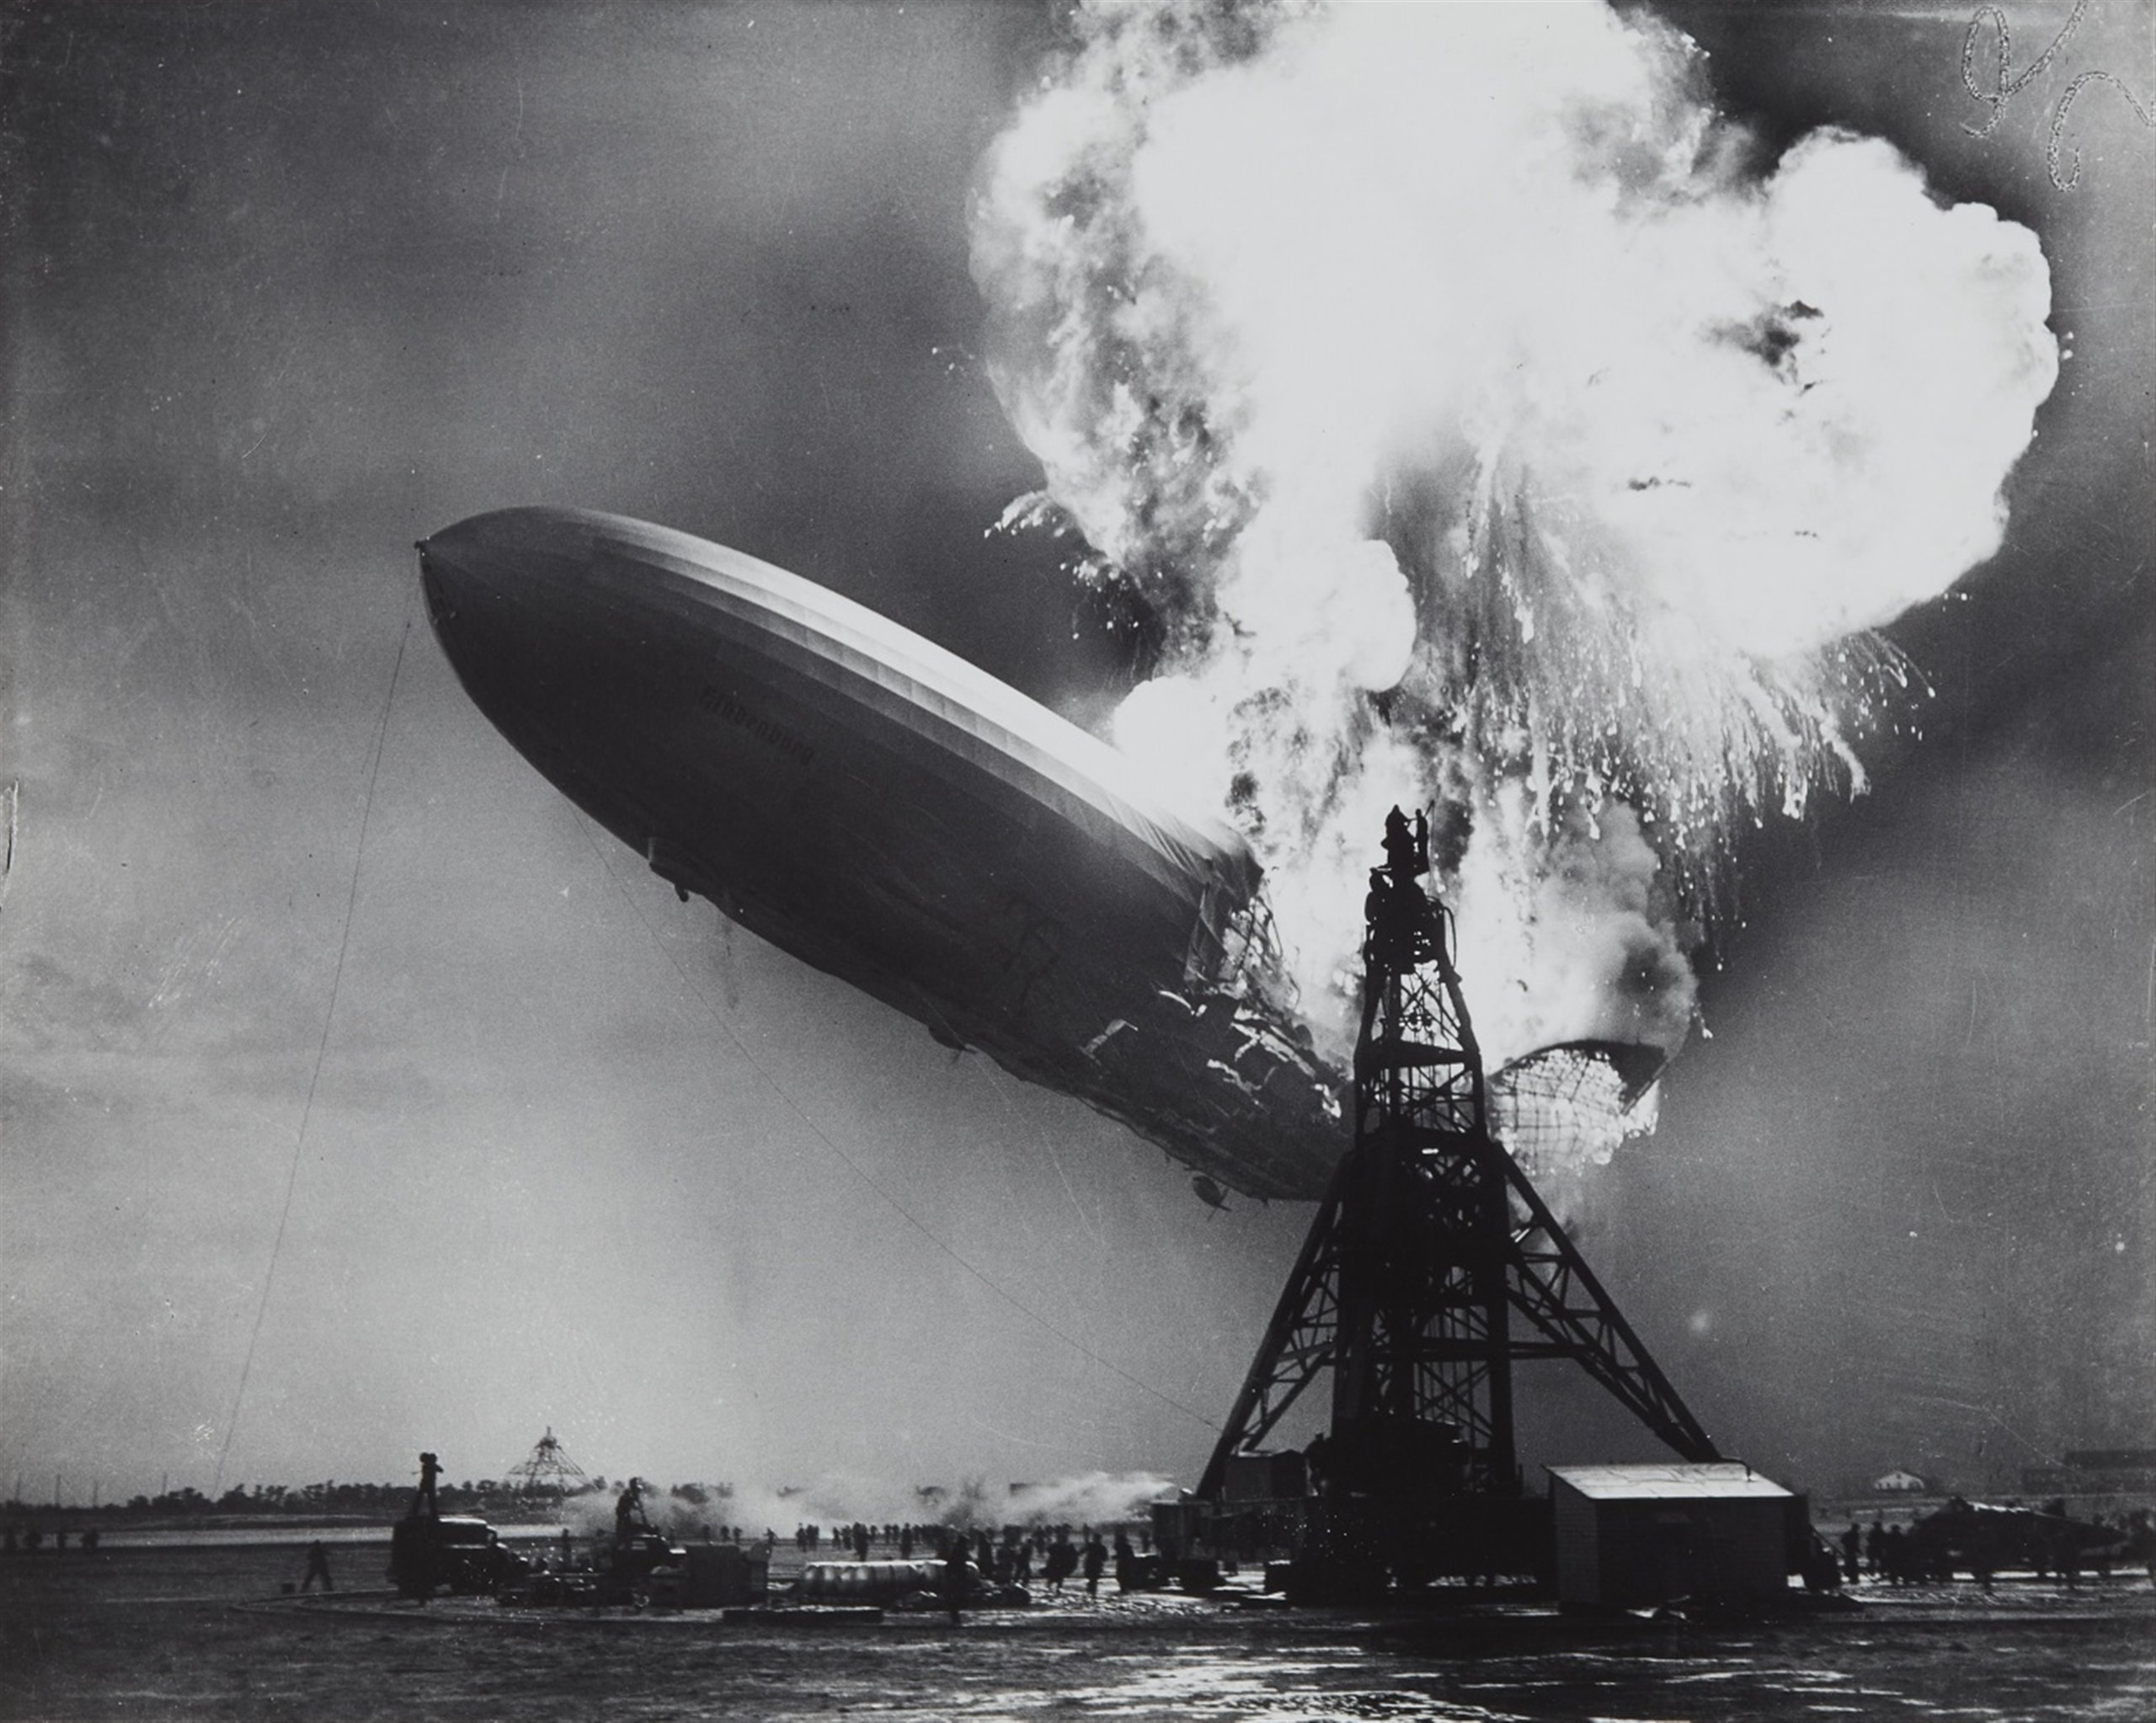 Hindenburg Disaster: Real Zeppelin Explosion Footage (1937)